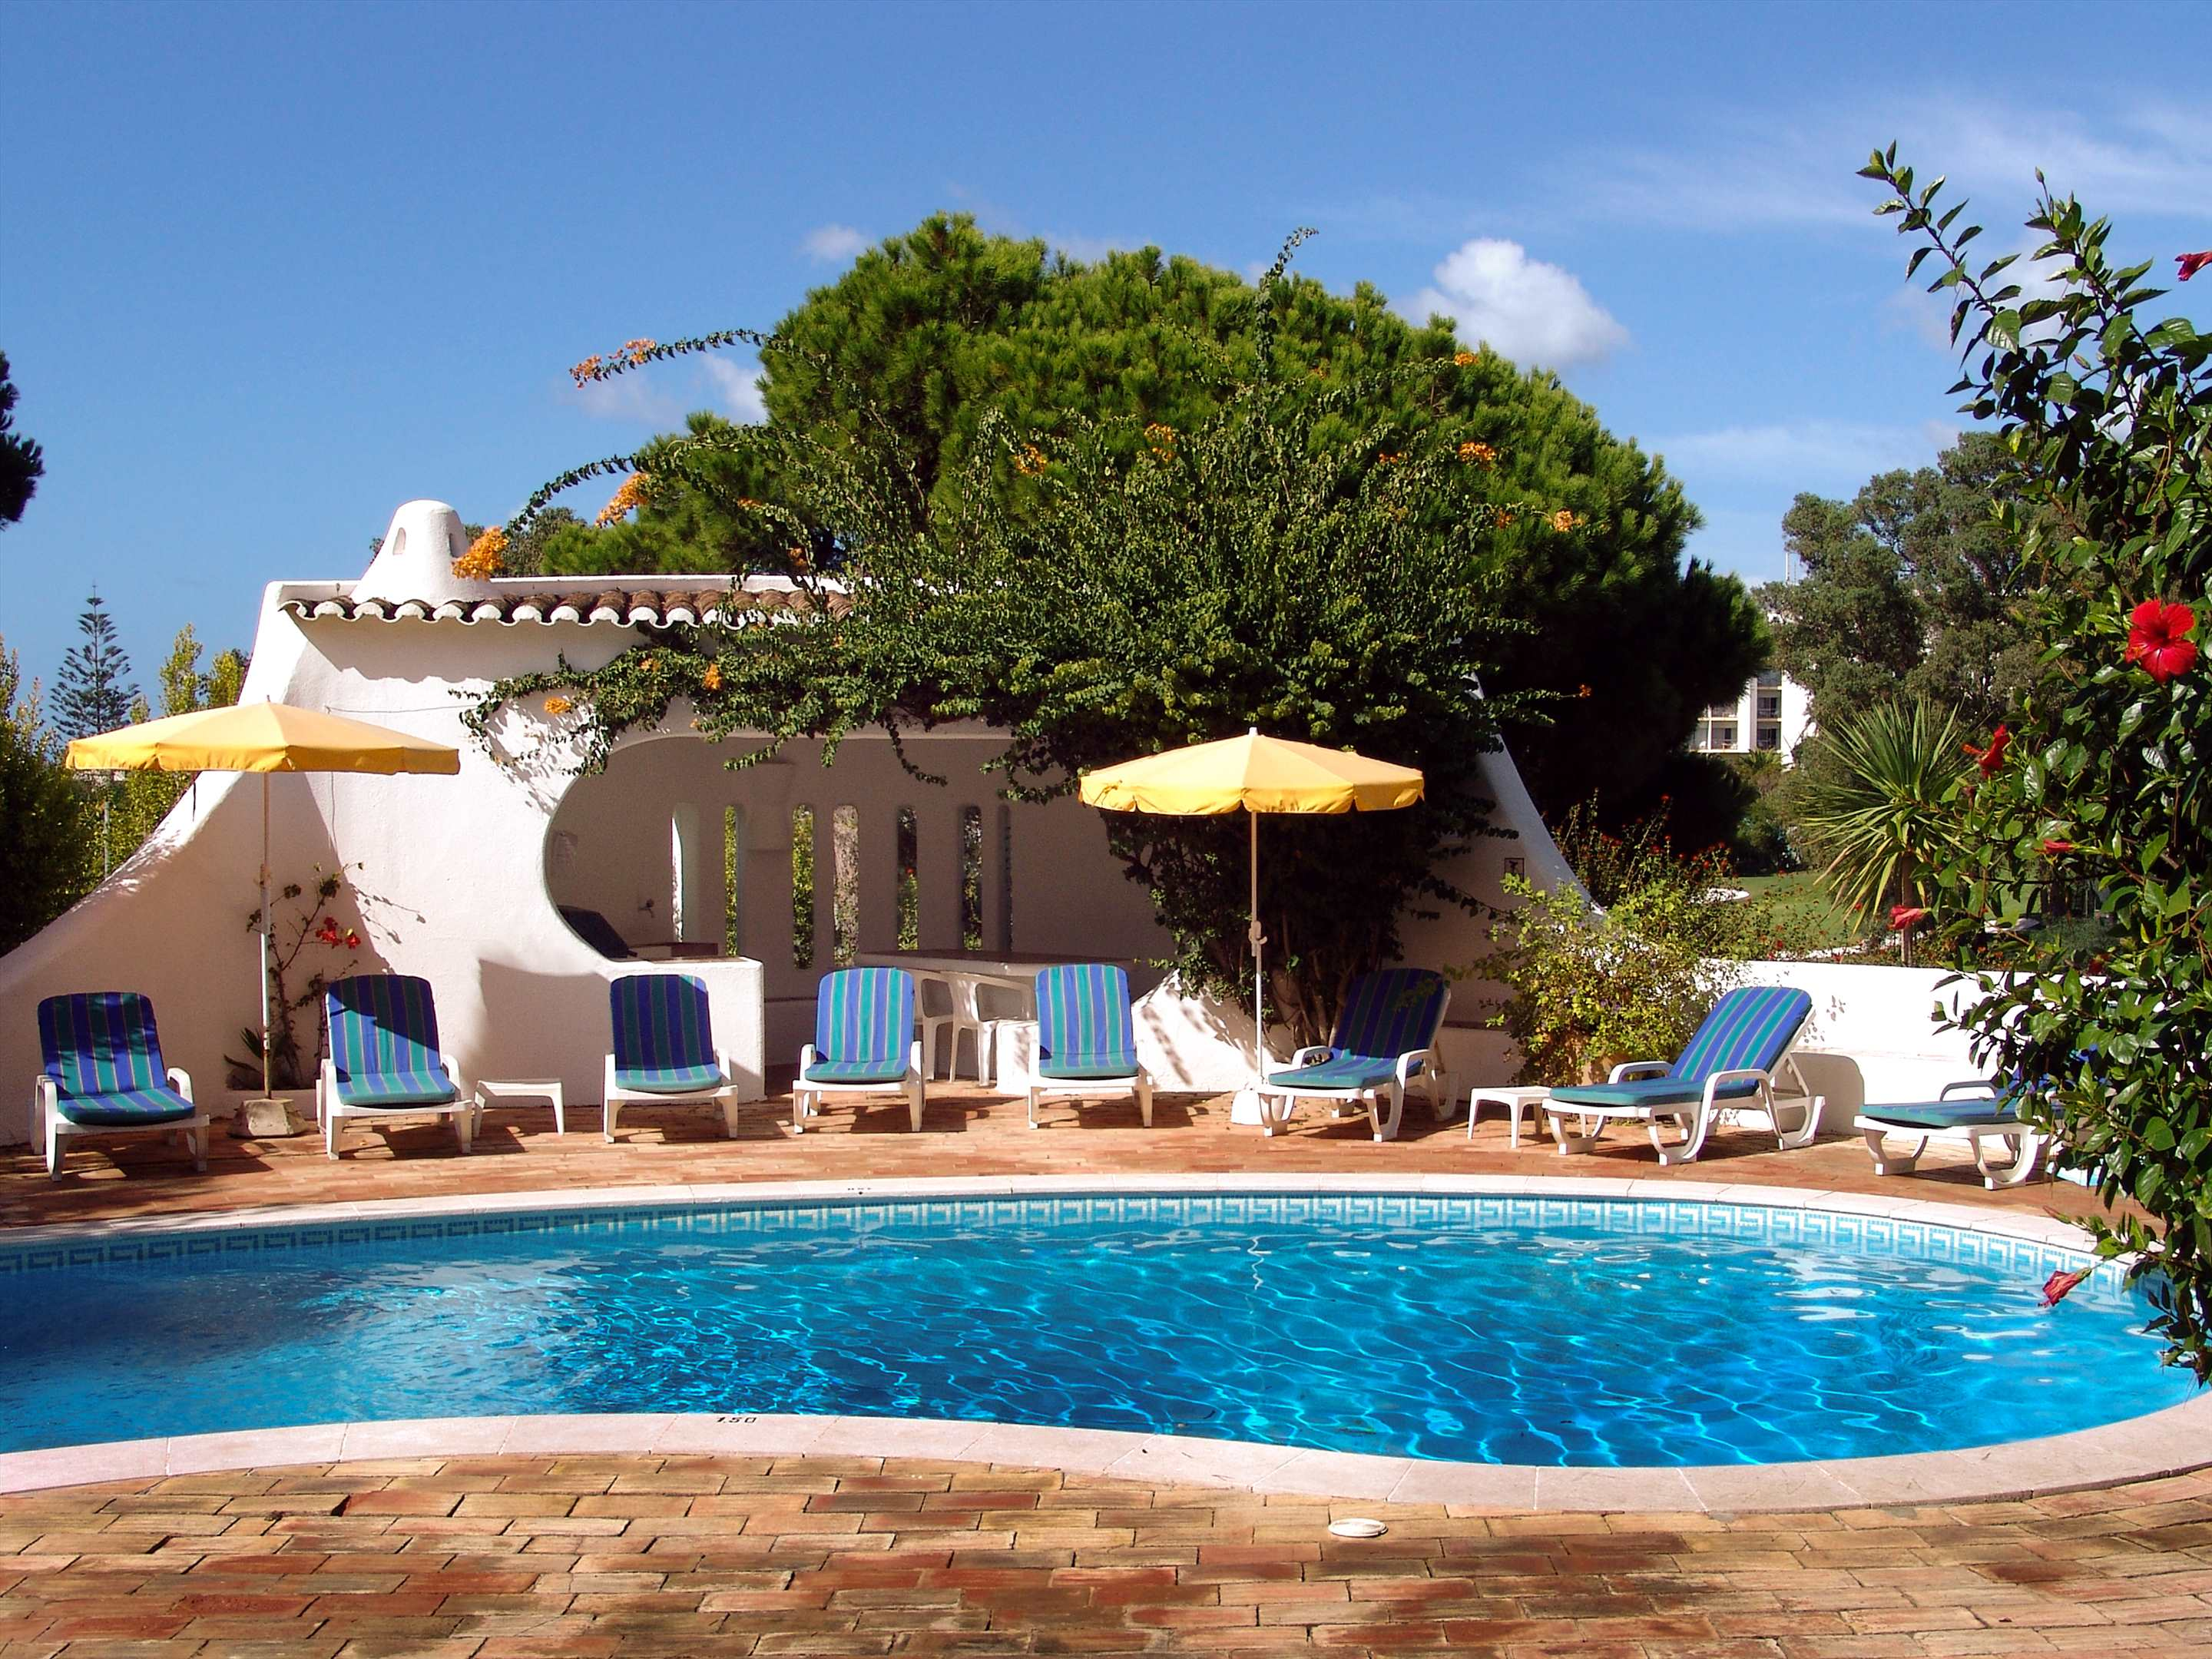 Villa Das Felicidades, 4 bedroom villa in Vale do Lobo, Algarve Photo #2